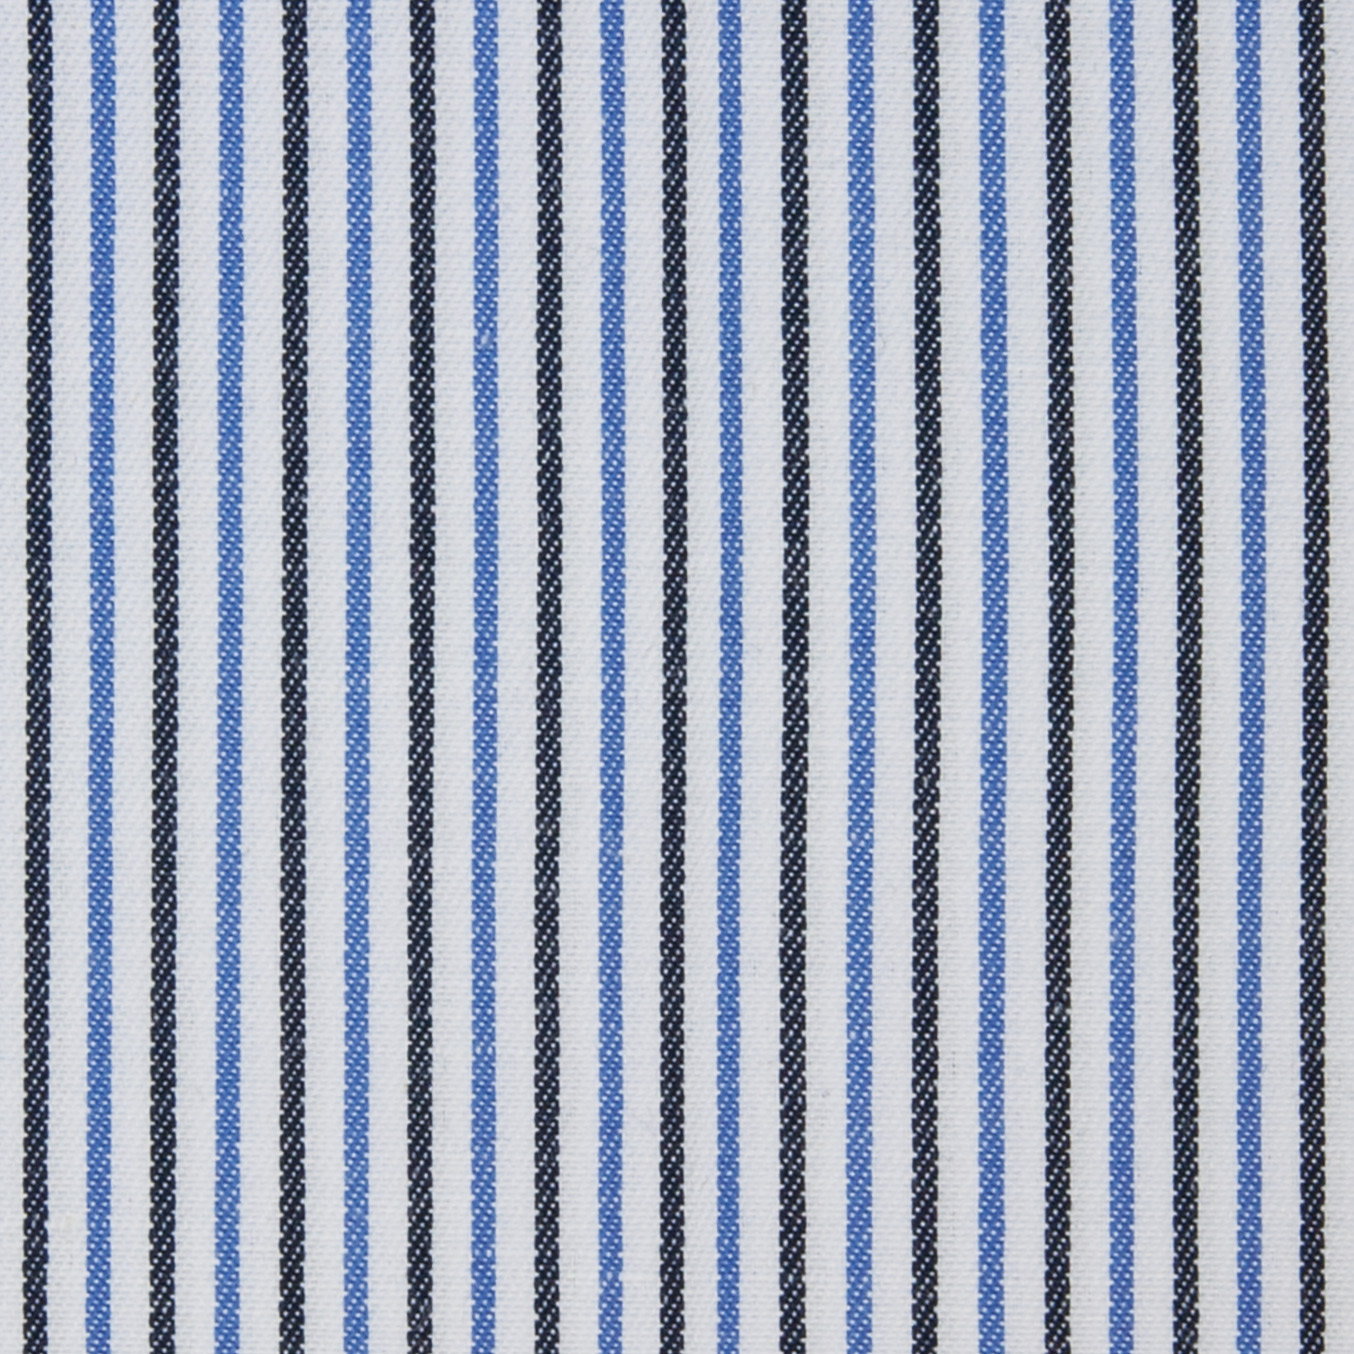 Black and Blue Stripe on White